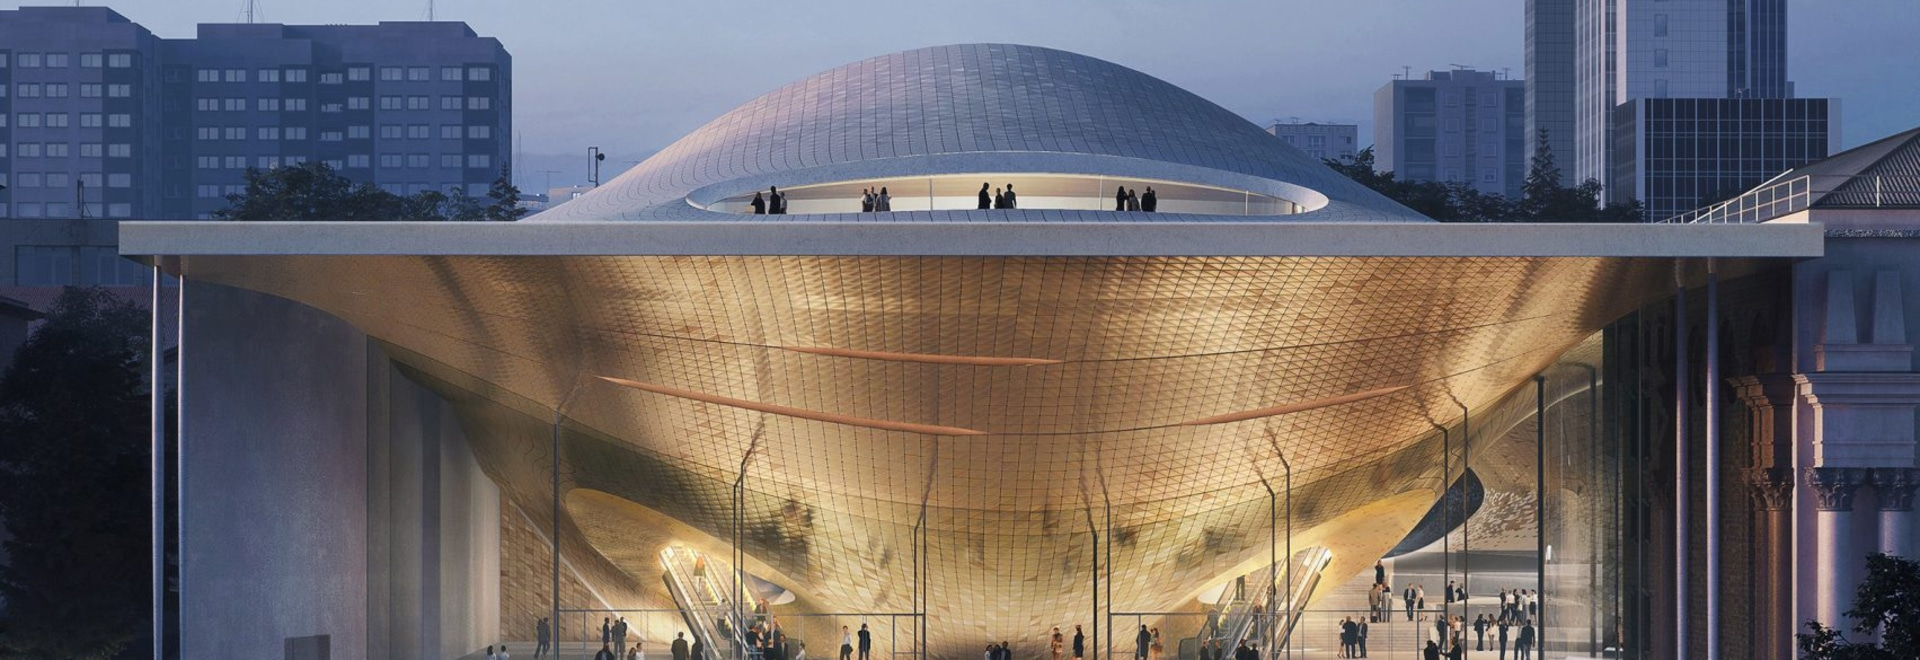 Zaha Hadid Architects to design concert hall for Ural Philharmonic Orchestra